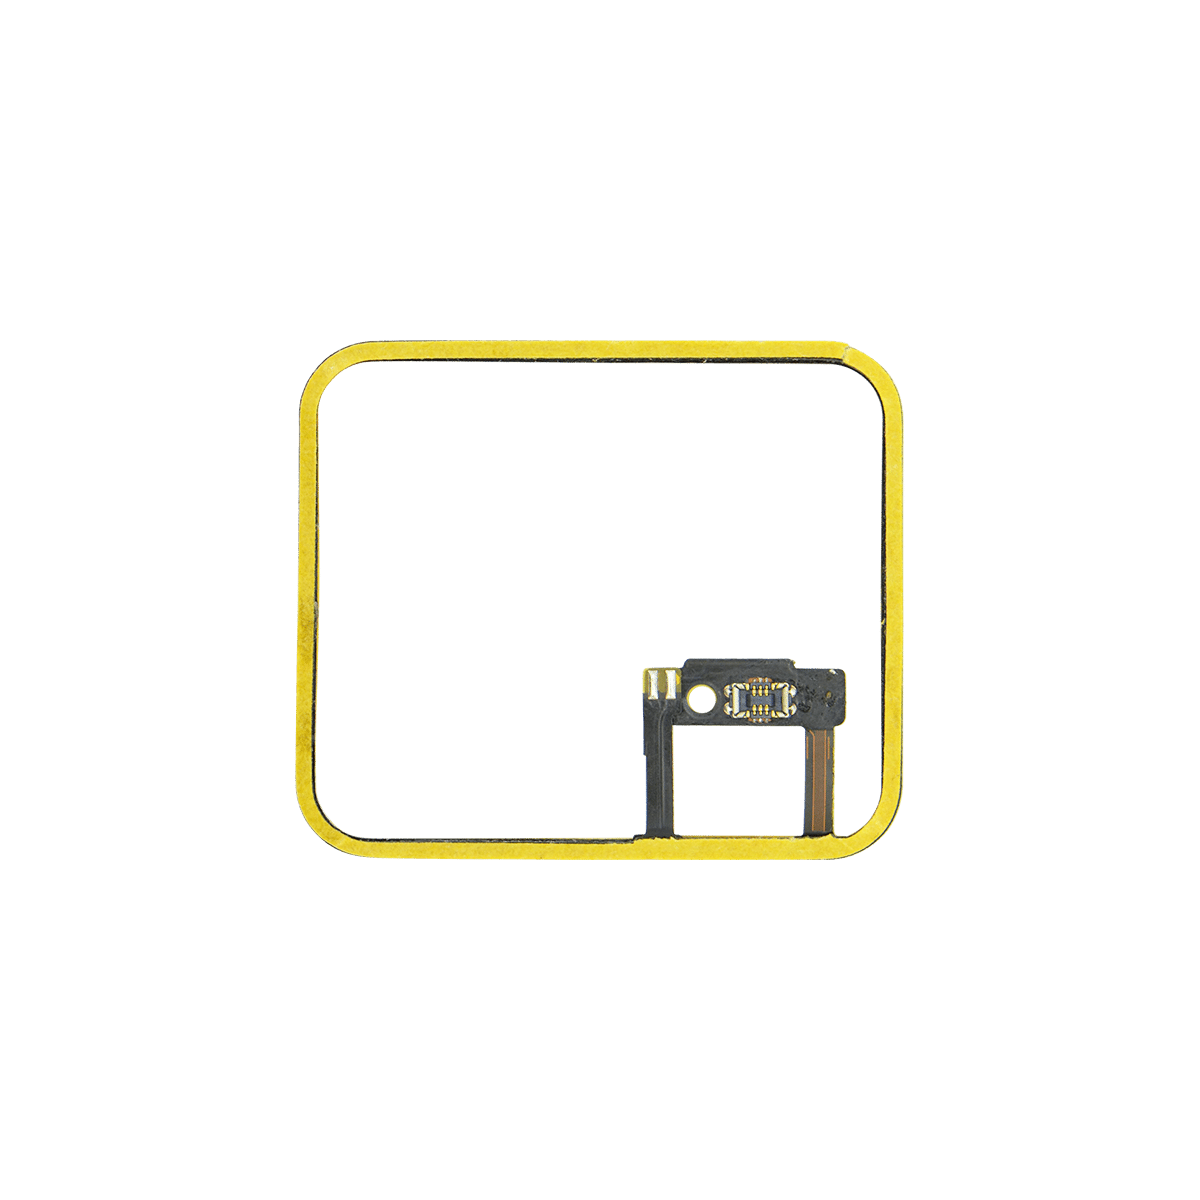 Apple Watch (Series 1 - 38 mm) Gasket for the Force Touch Sensor